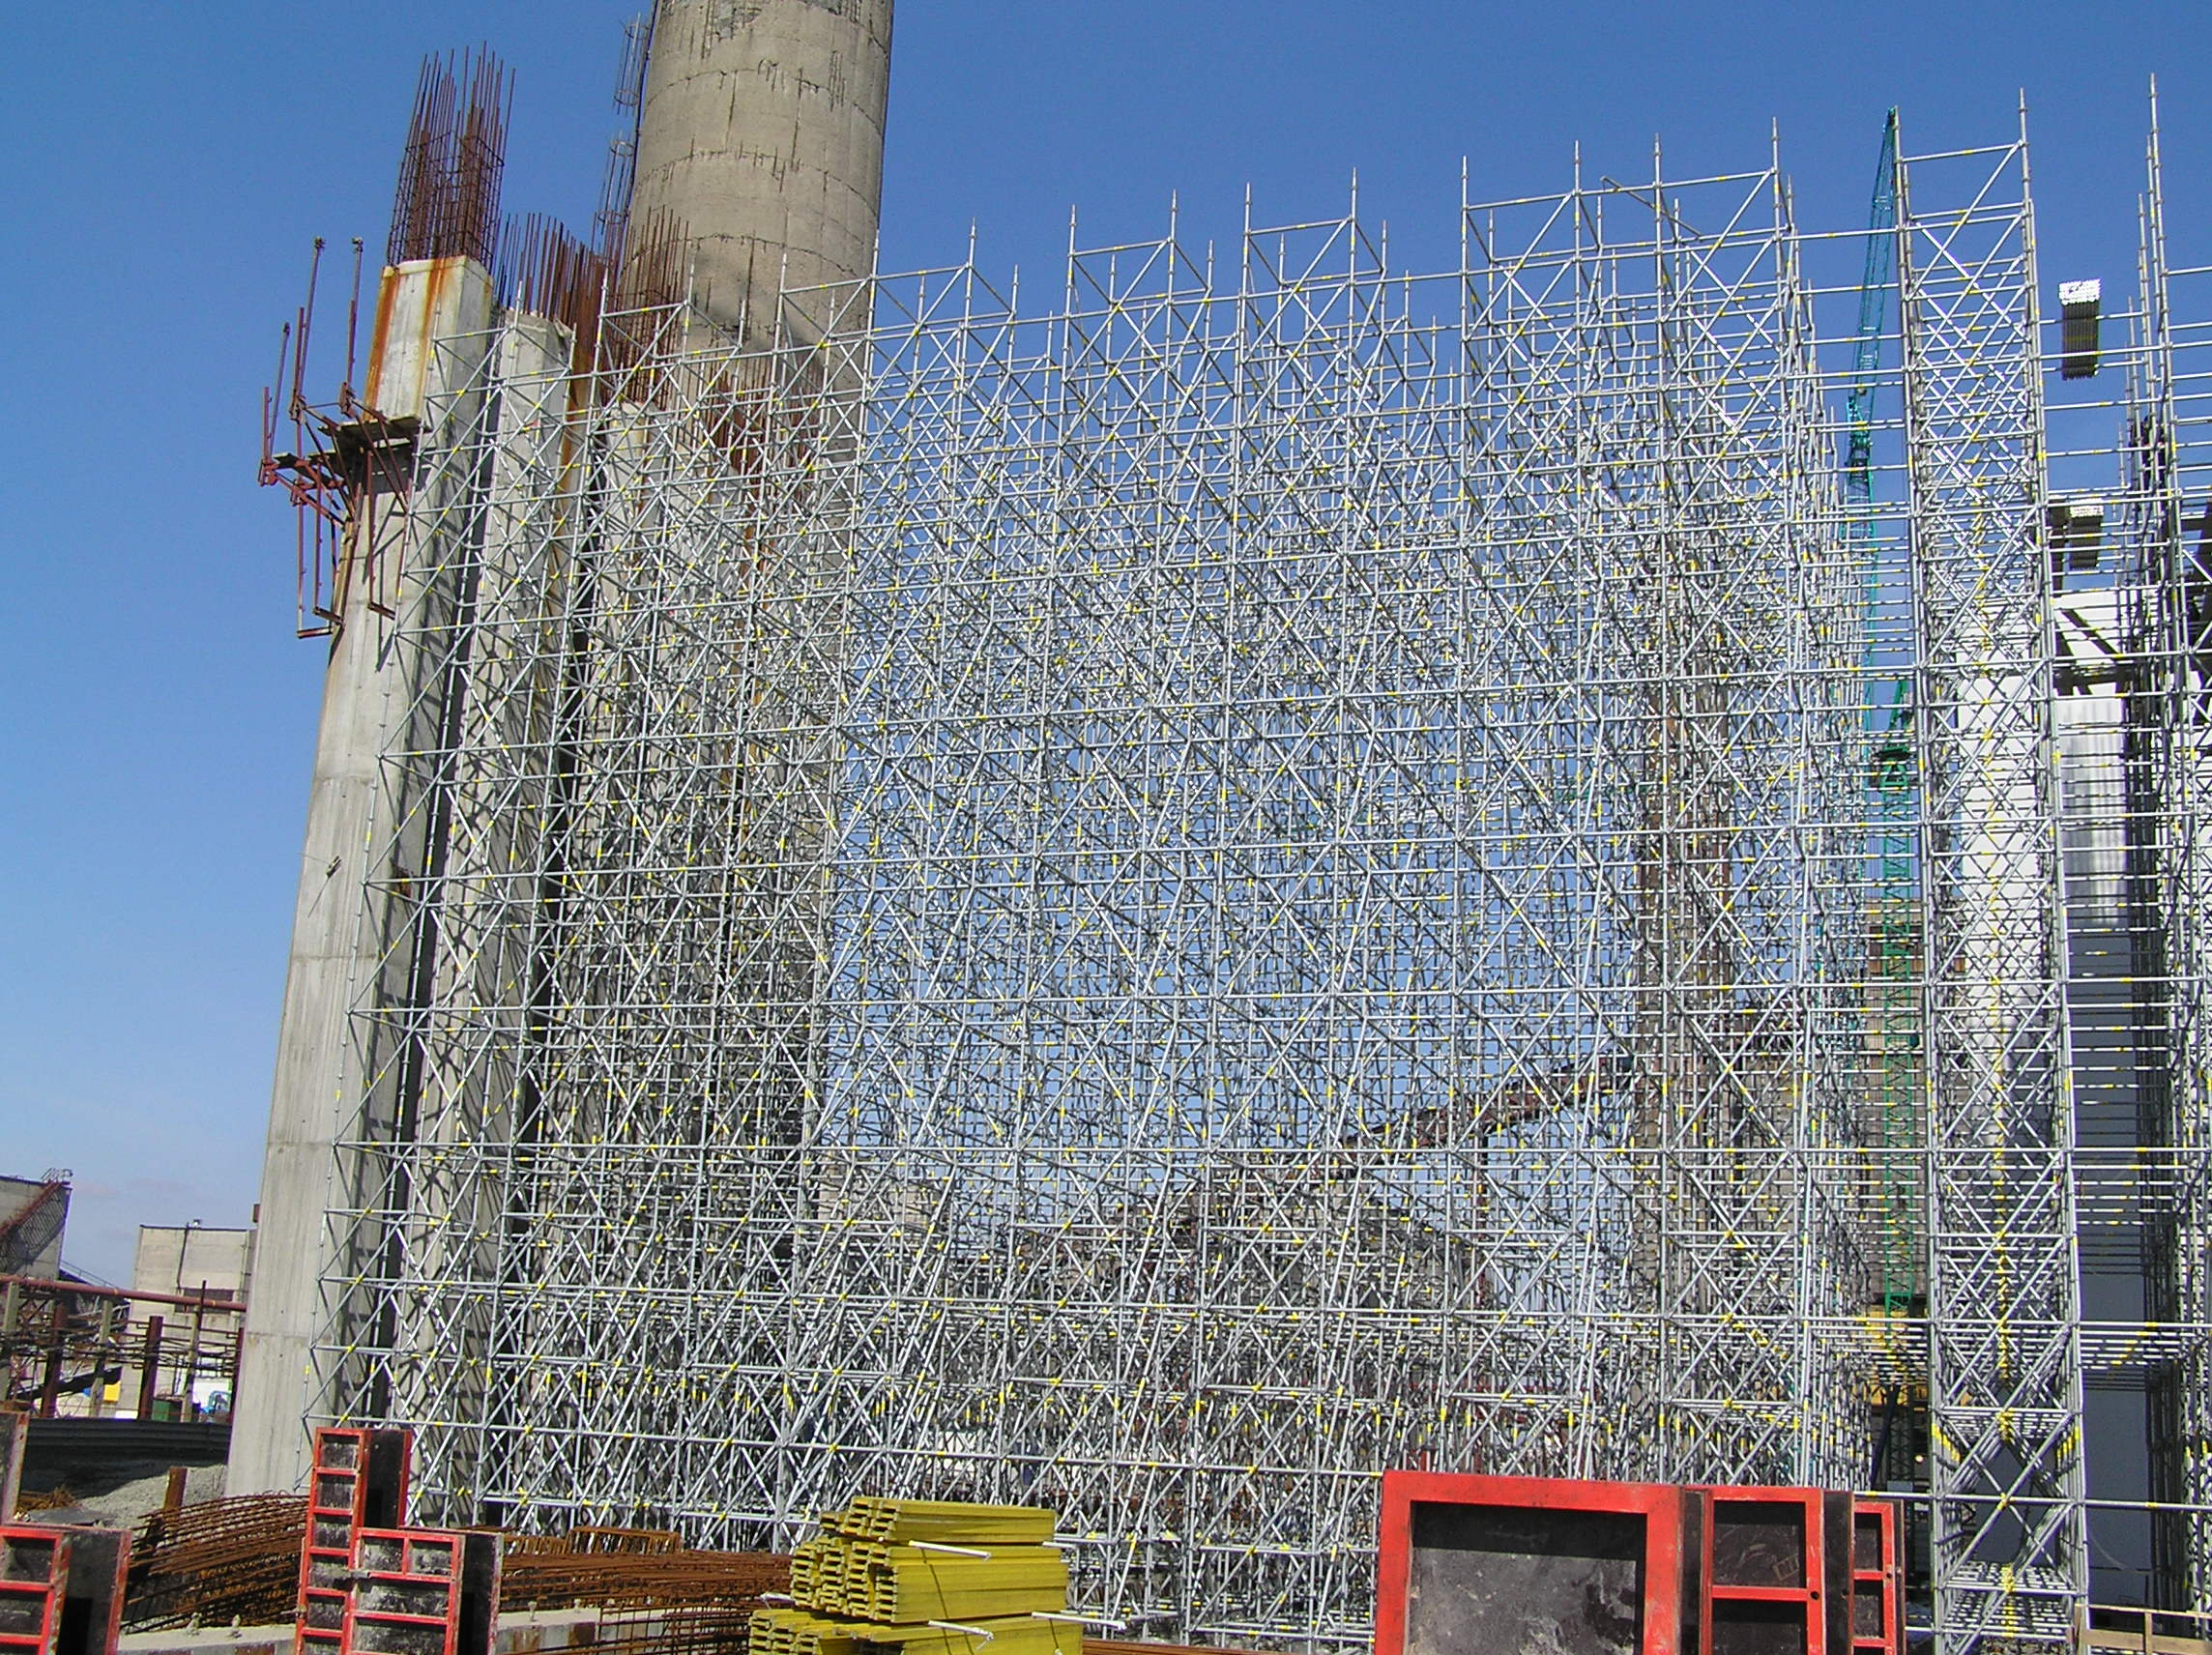 ERECTION OF METAL CONSTRUCTIONS